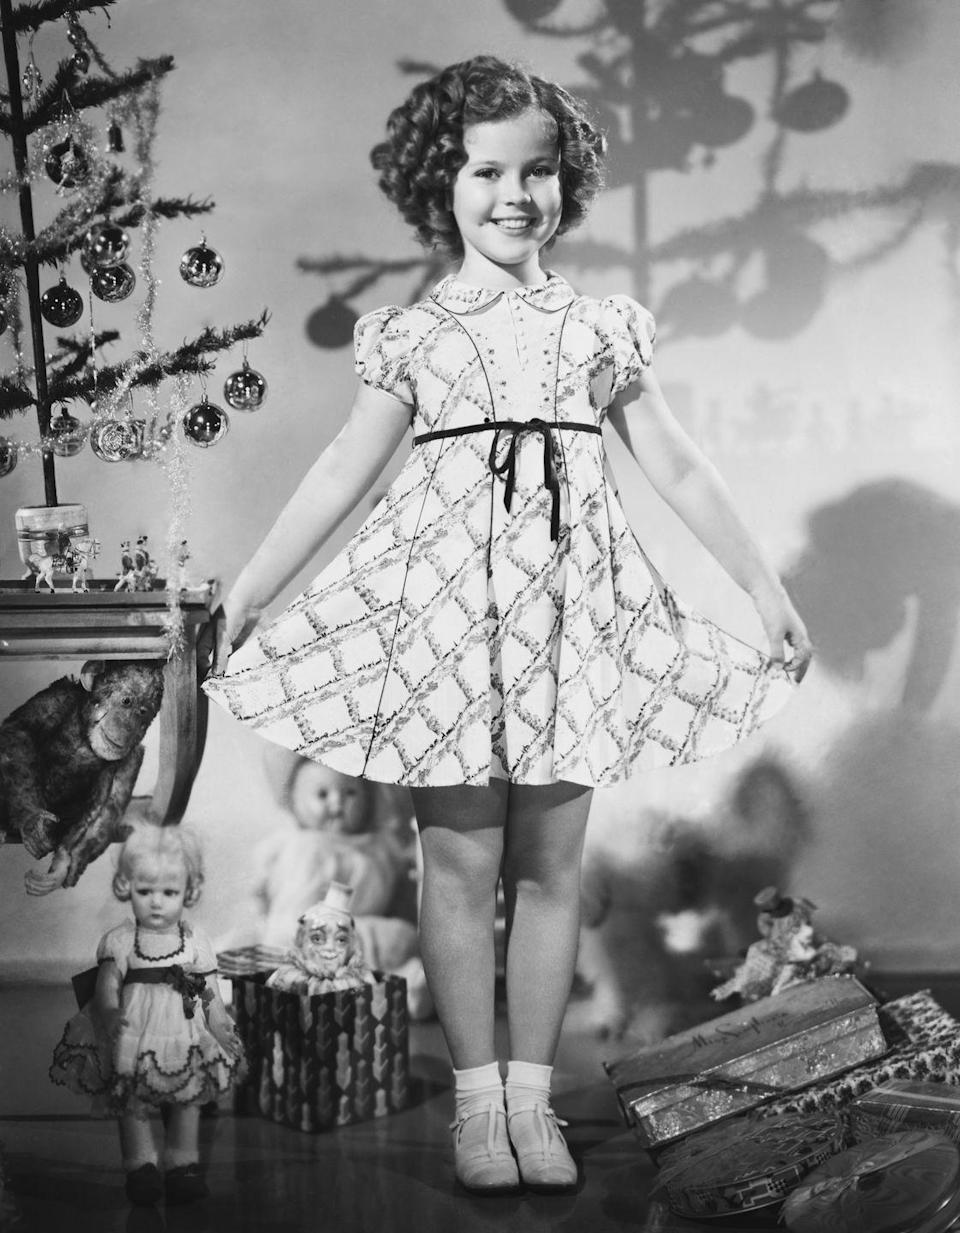 <p>Child star Shirley Temple (<em>Curly Top</em>) models a dress for a 1936 holiday ad. Earlier that year, Temple had starred in four movies, including <em>Captain January, Poor Little Rich Girl, Dimples, and Stowaway. </em></p>